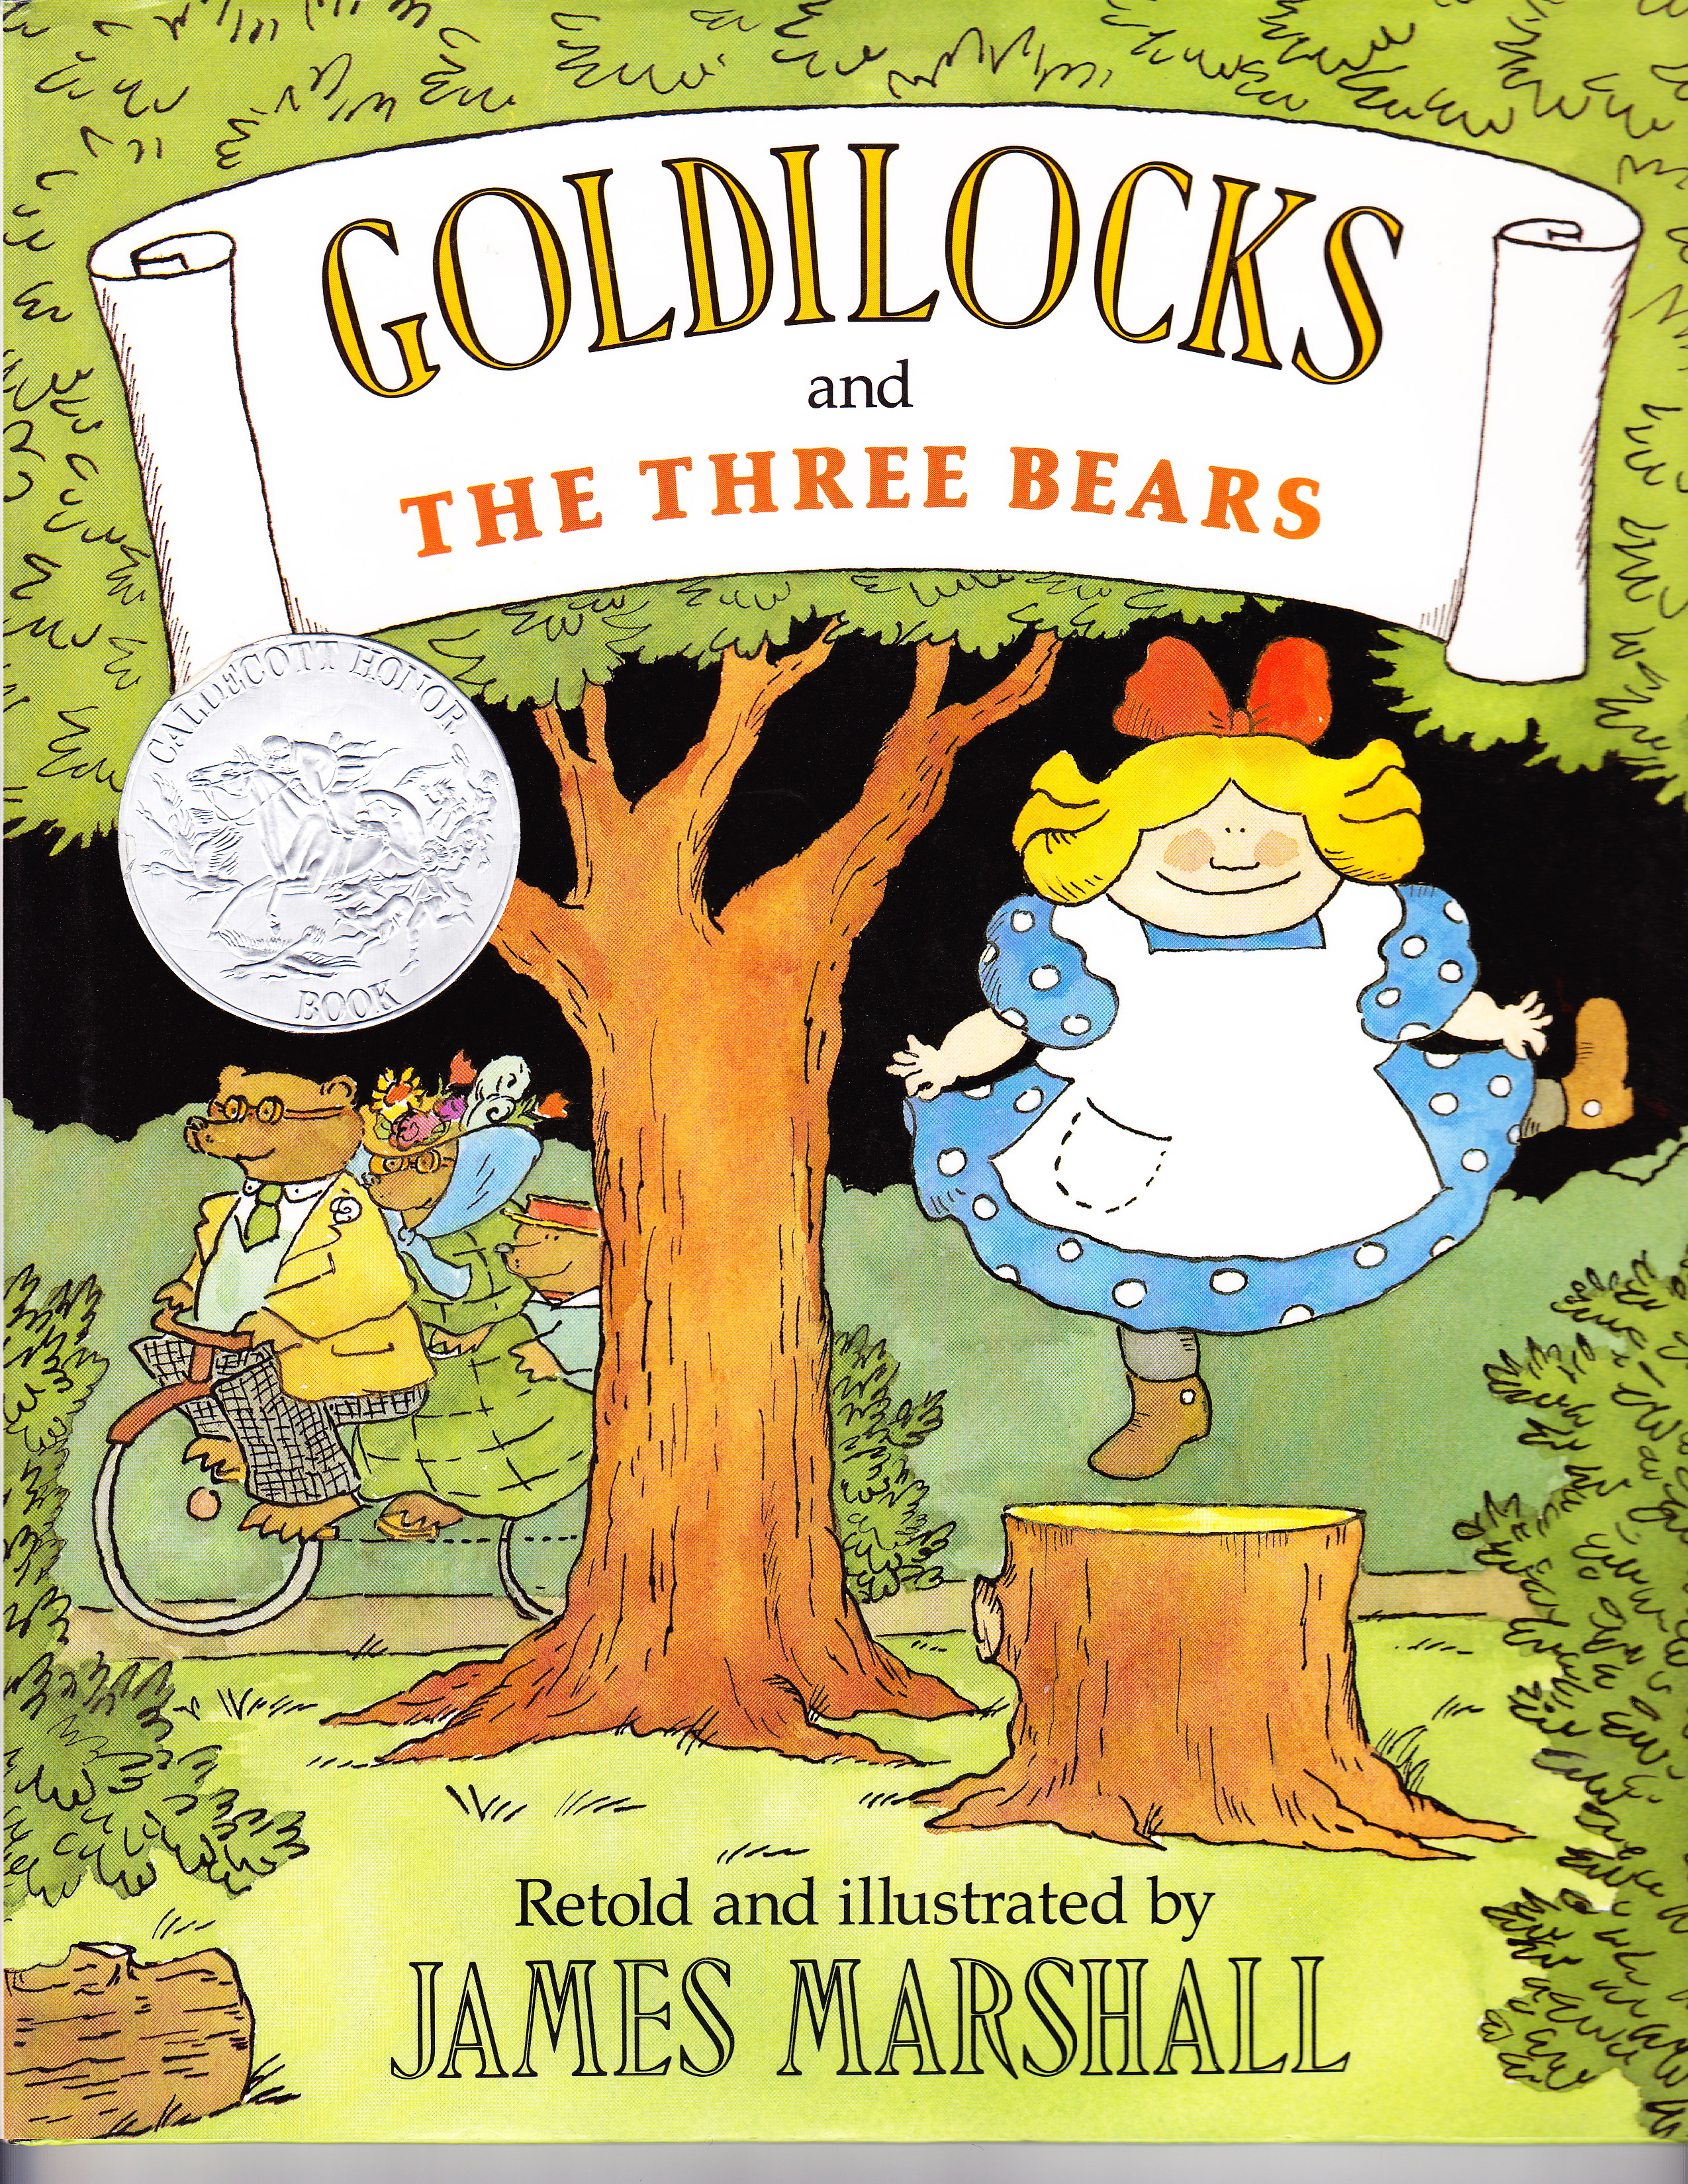 Uncategorized Three Little Bear retelling the three bears kindergarten nana we acted out and retold little red ridinghood pigs in very much same way starting with familiar stories like these really